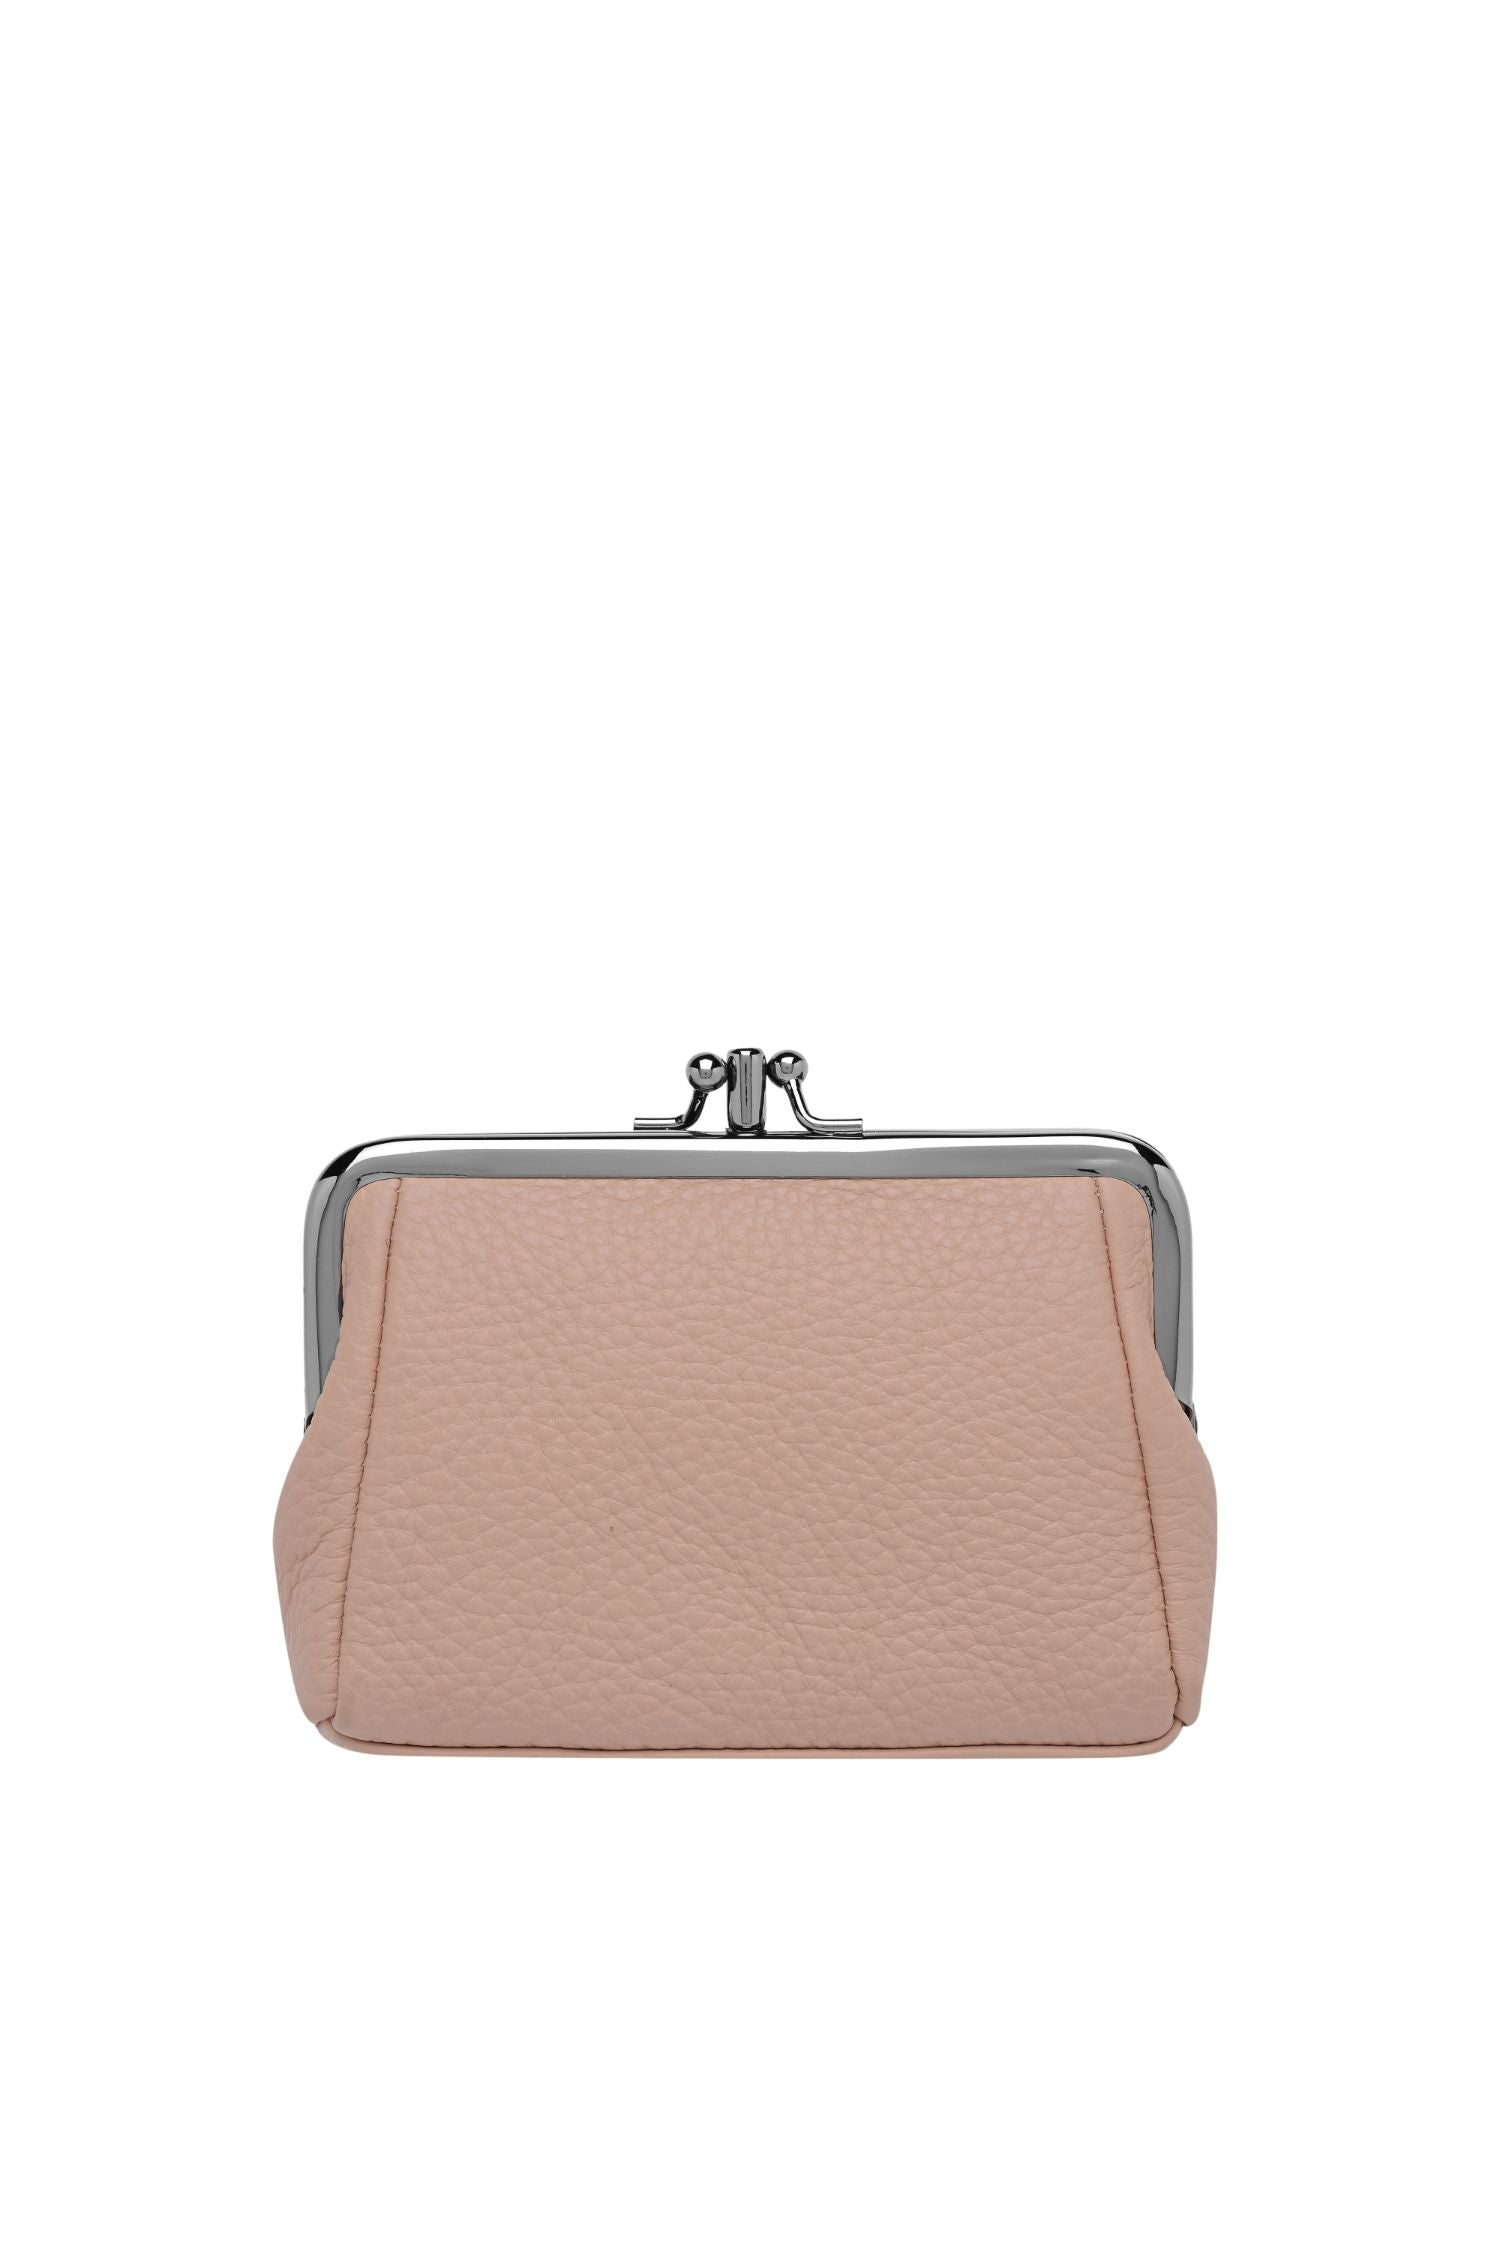 Volatile Purse - Dusty Pink